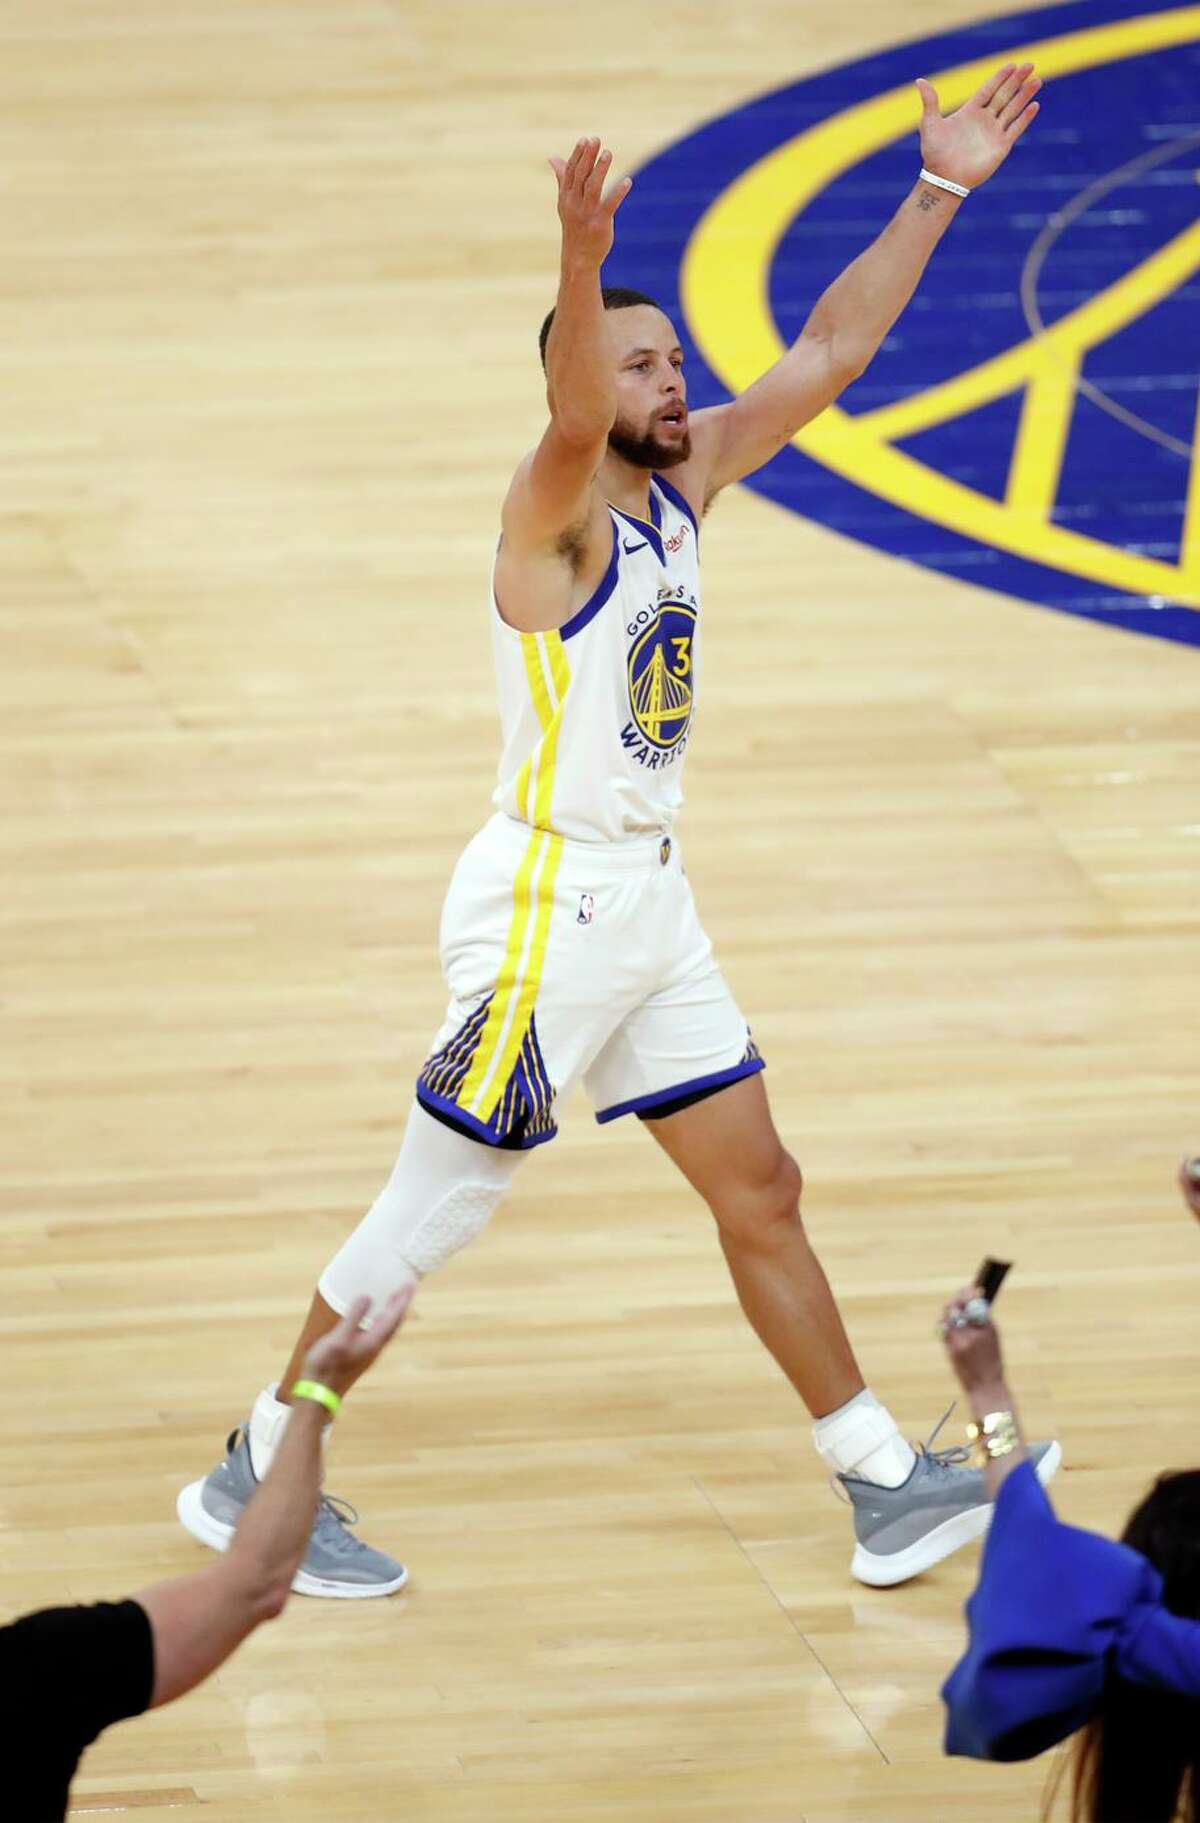 Golden State Warriors' Stephen Curry celebrates a fourth quarter 3-pointer during 113-101 win over Memphis Grizzlies in NBA game at Chase Center in San Francisco, Calif., on Sunday, May 16, 2021.